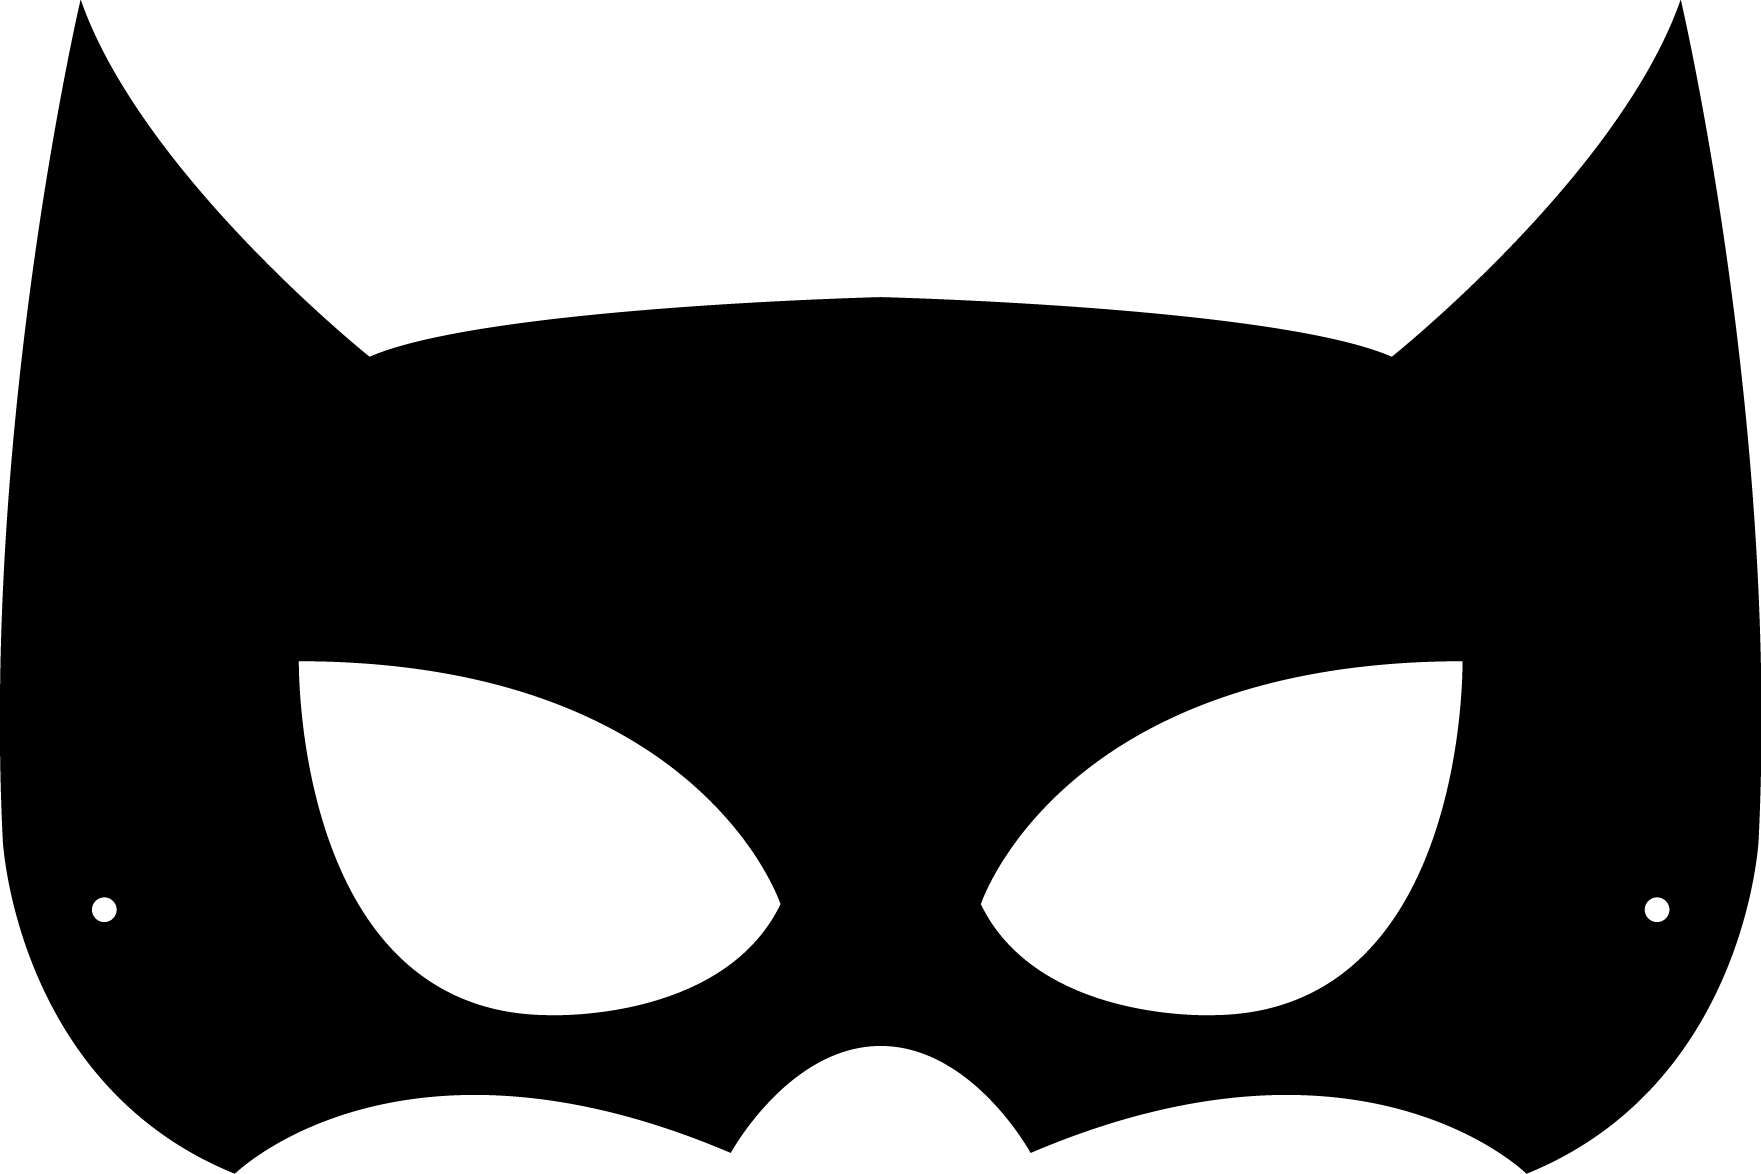 marvel black cat mask template - moldes coloridos de m scaras infantis pokemon x men